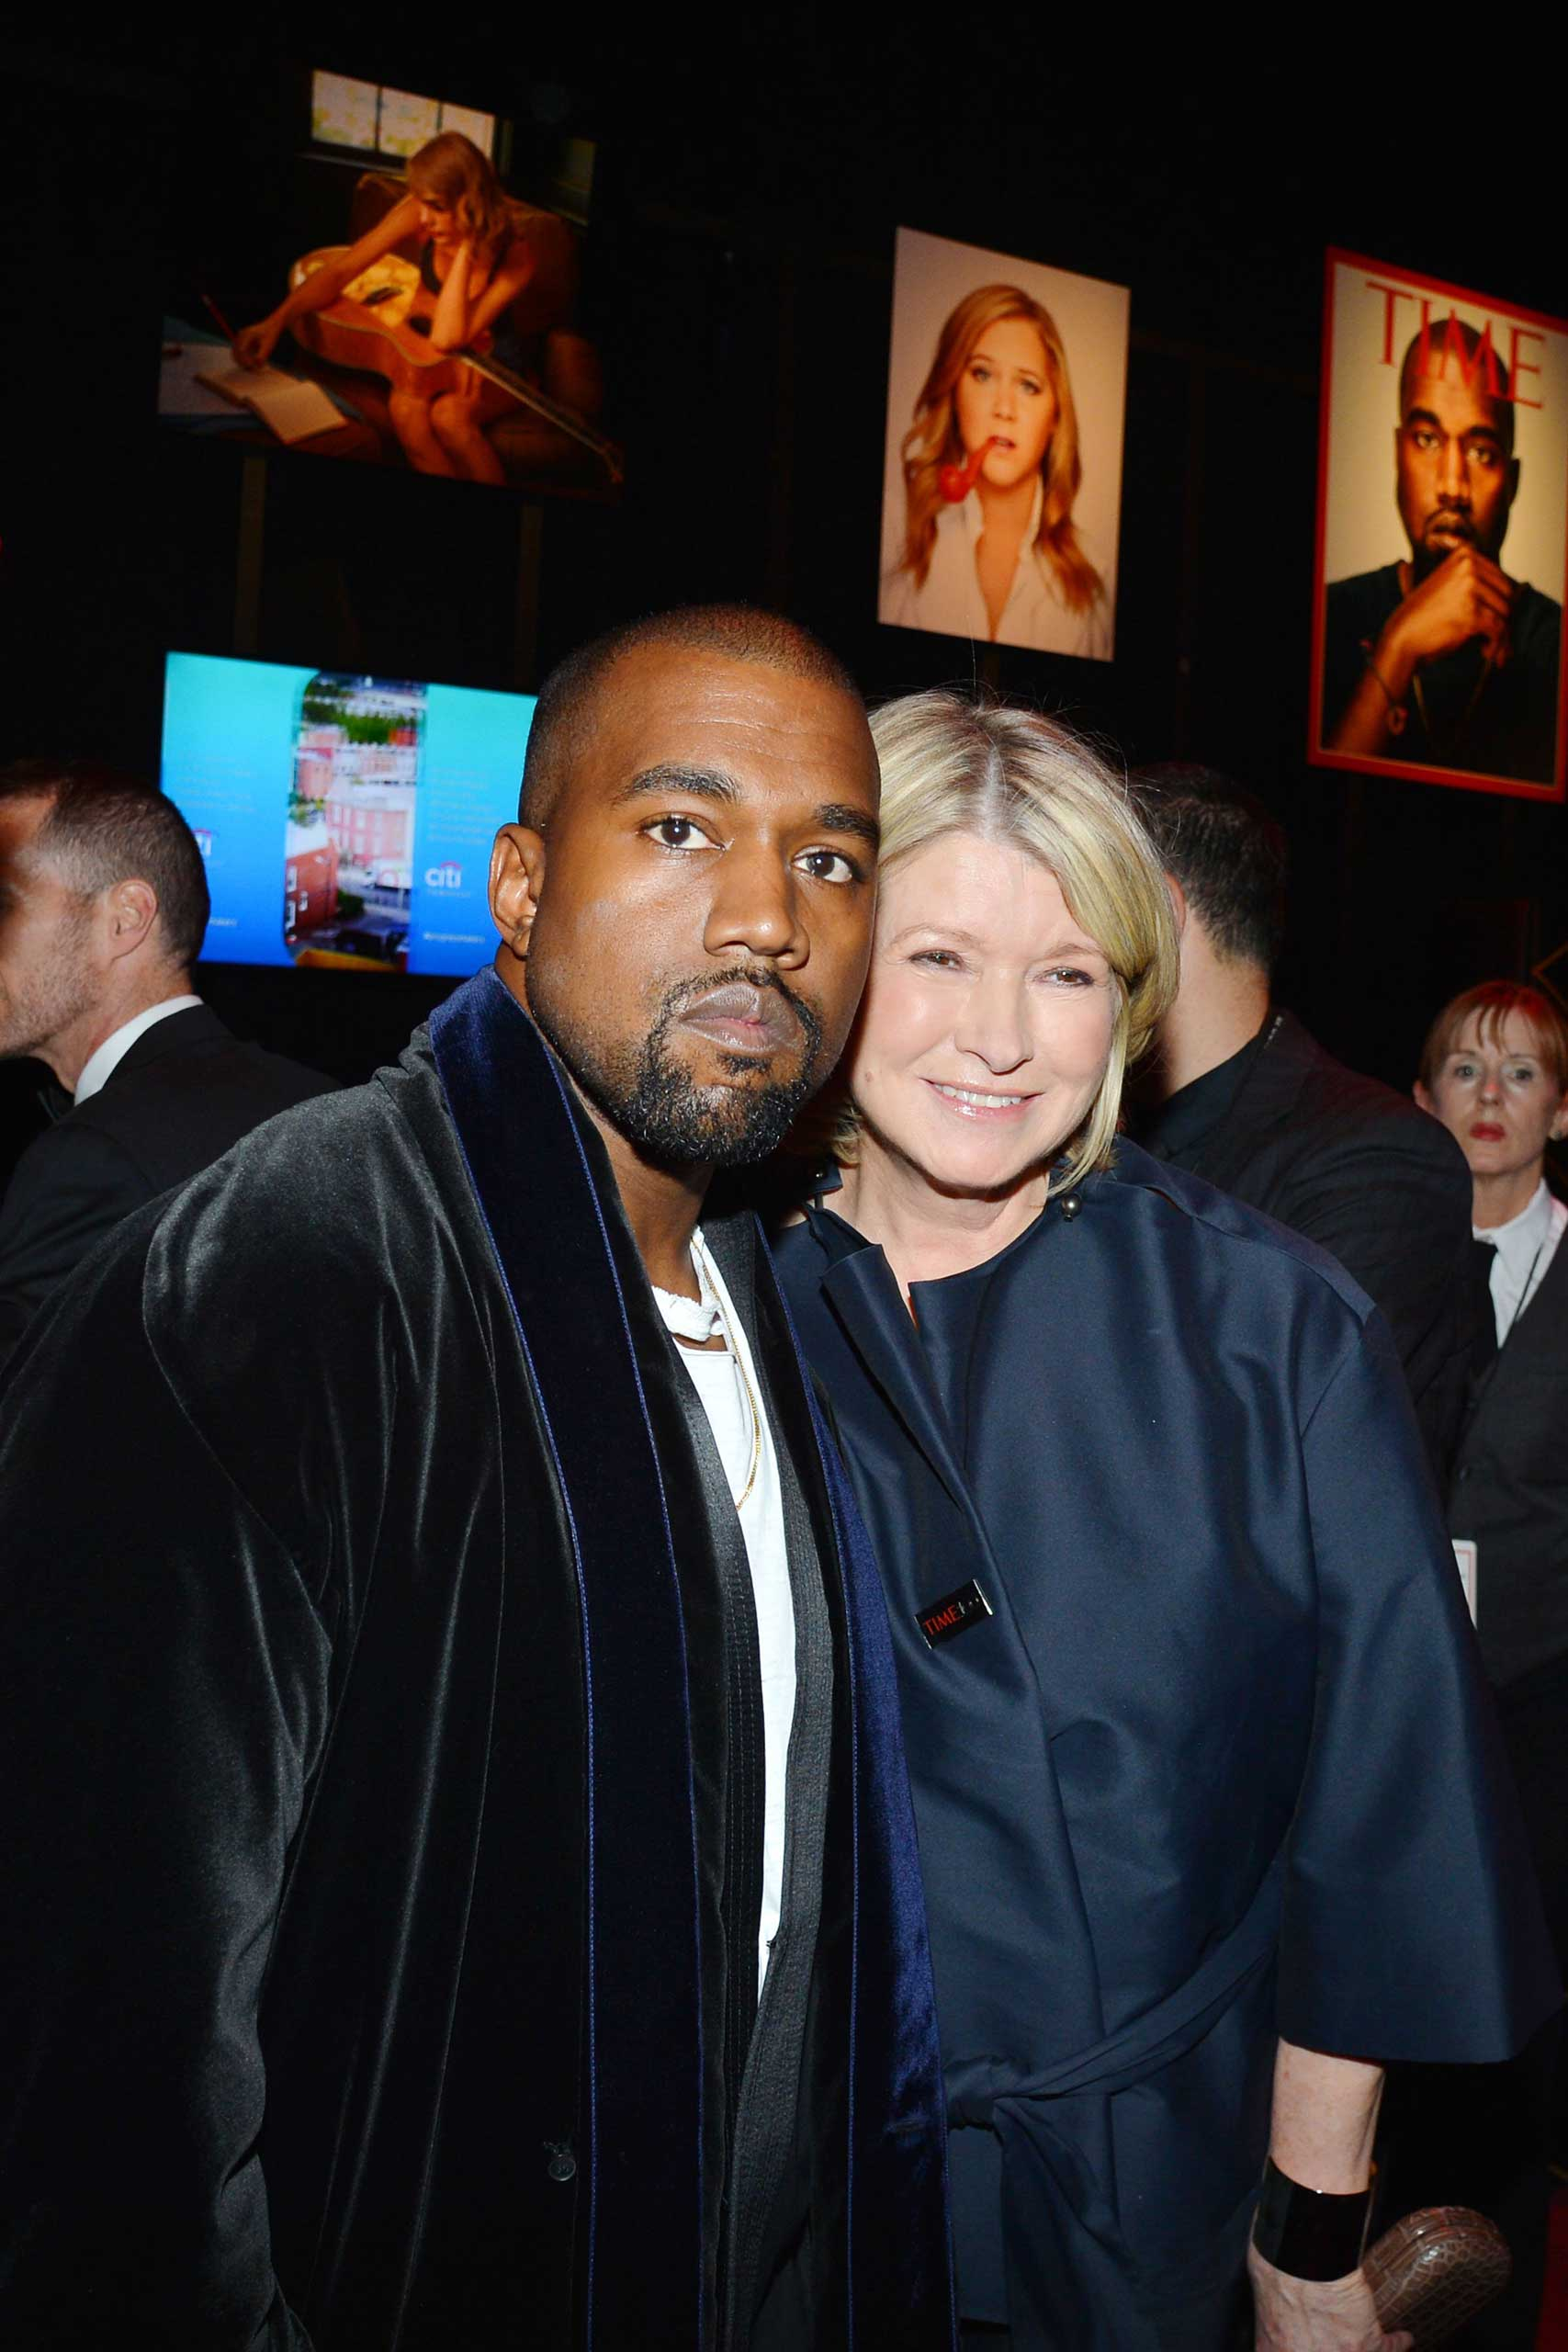 Martha Stewart Kanye West attend the TIME 100 Gala at Jazz at Lincoln Center in New York City on April 21, 2015.